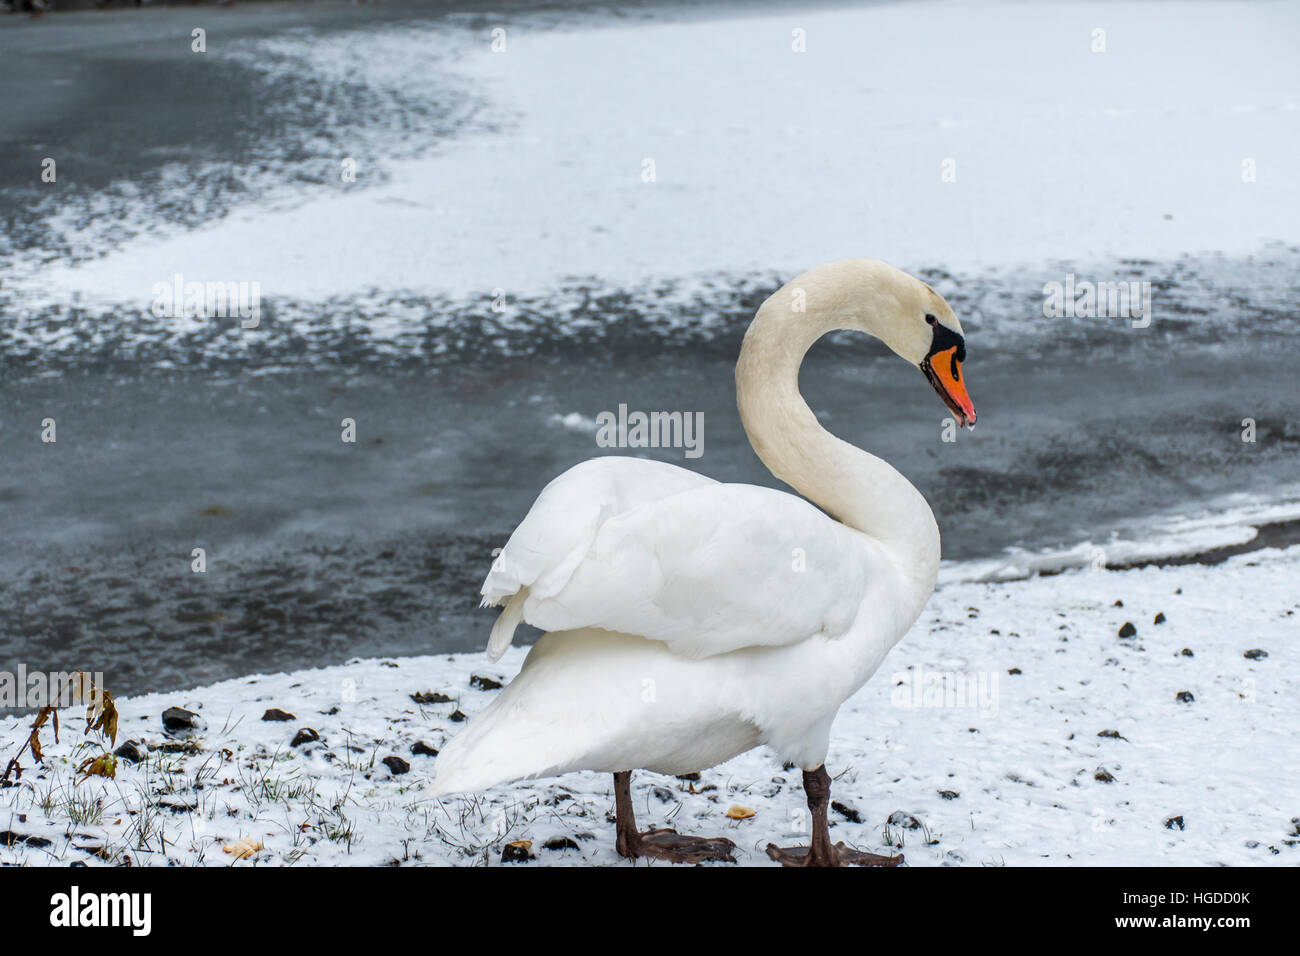 Winter Wonder Land Snow white swan Bird walking close to ice lake 10 - Stock Image